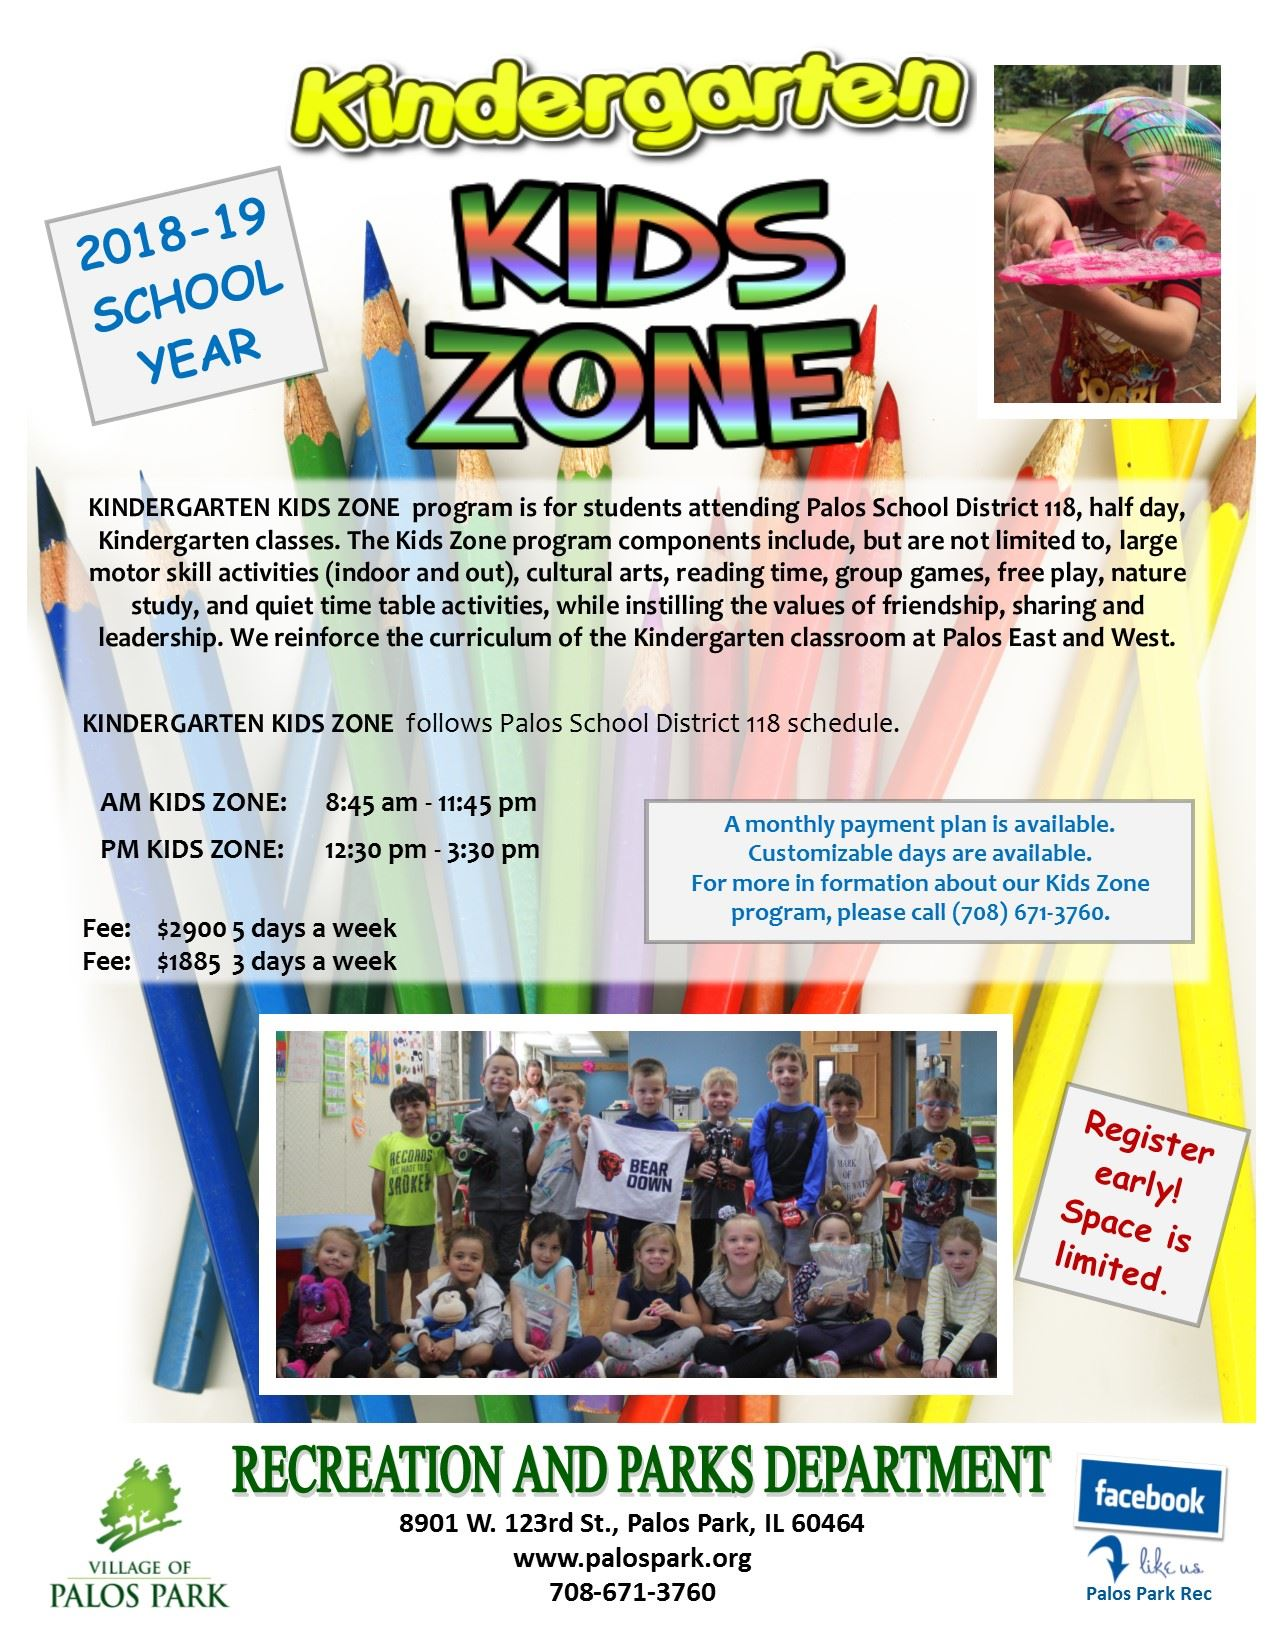 Kids Zone 2 flyer 2018-19